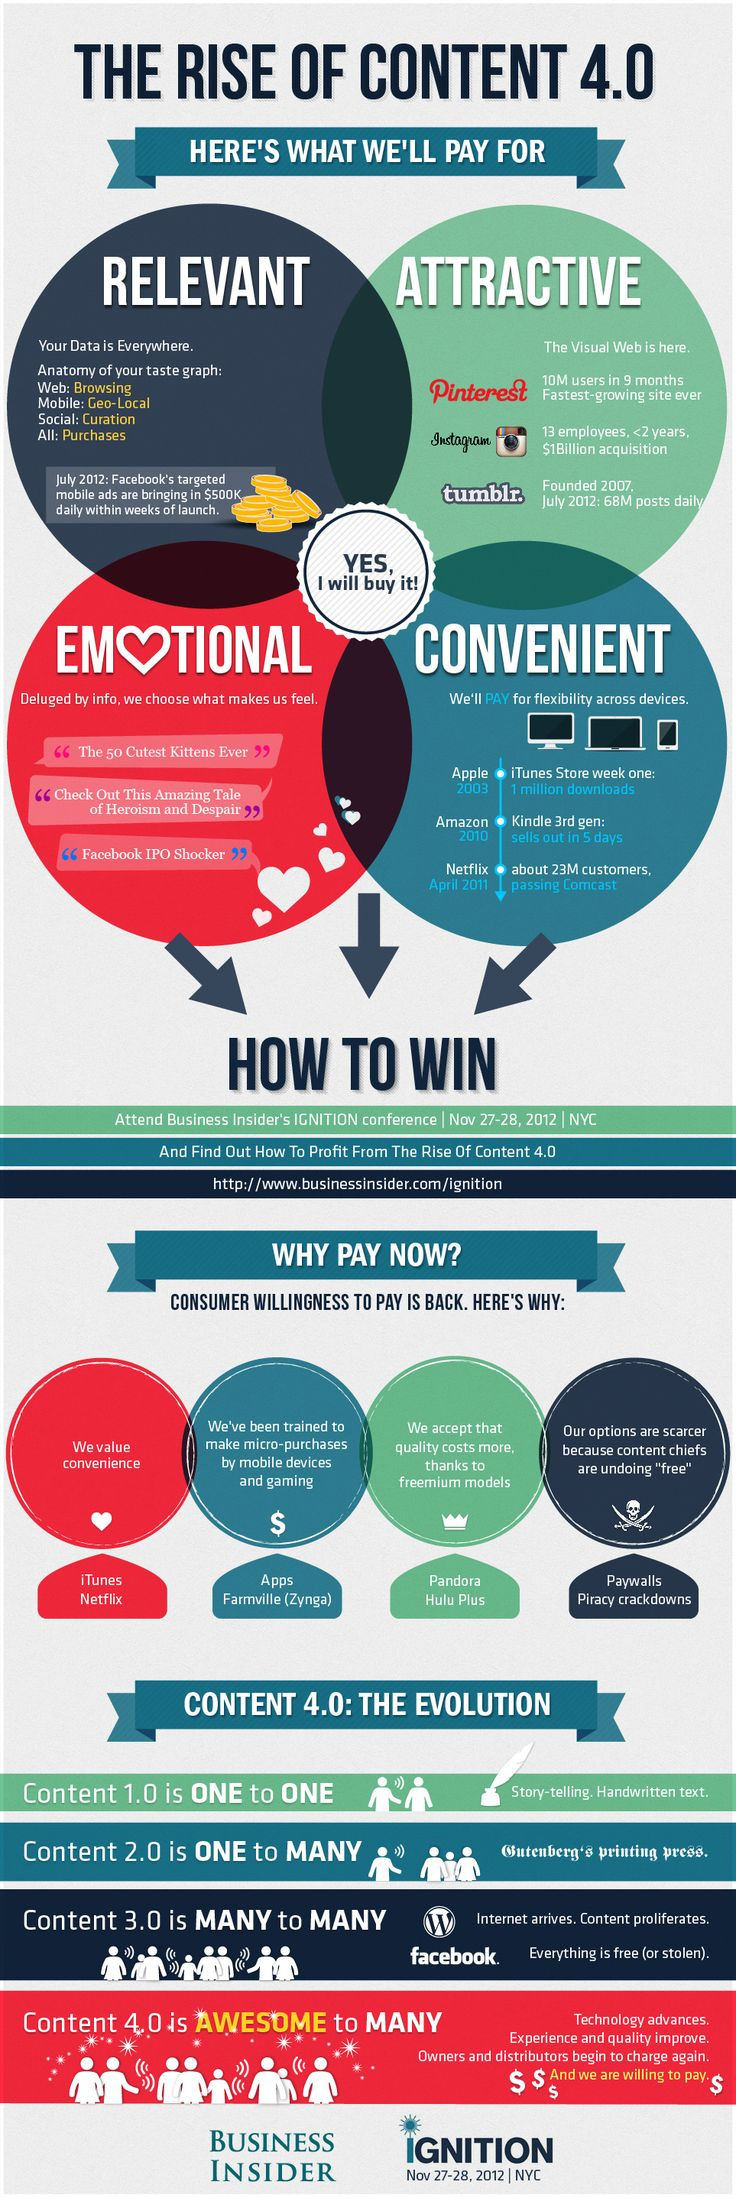 The rise of content 4.0 #infographic #dsmi